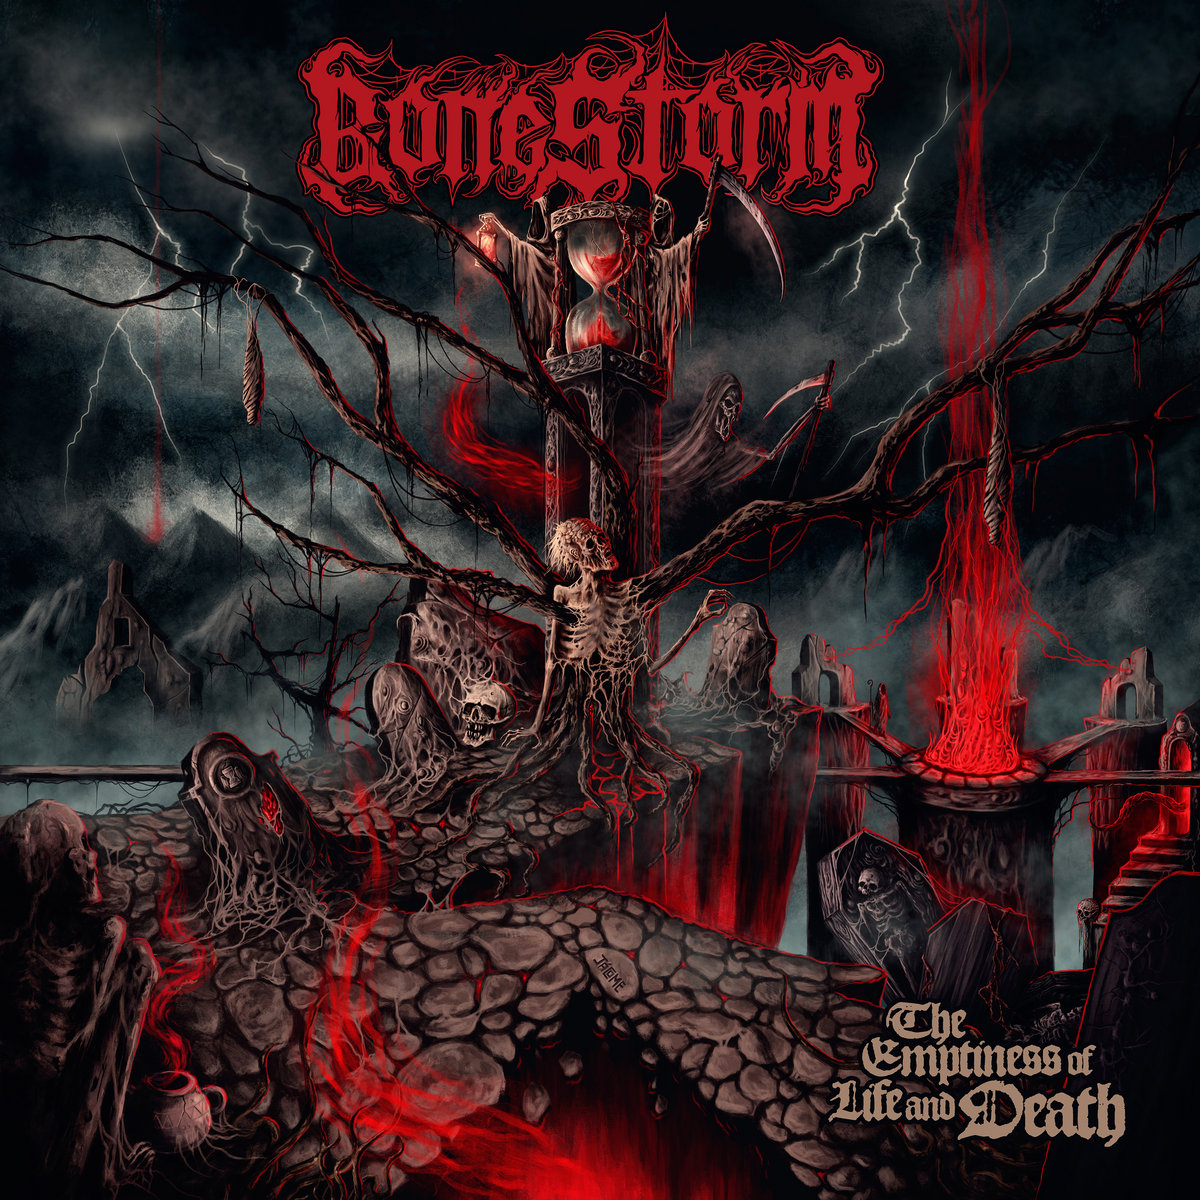 Bonestorm - The Emptiness of Life and Death